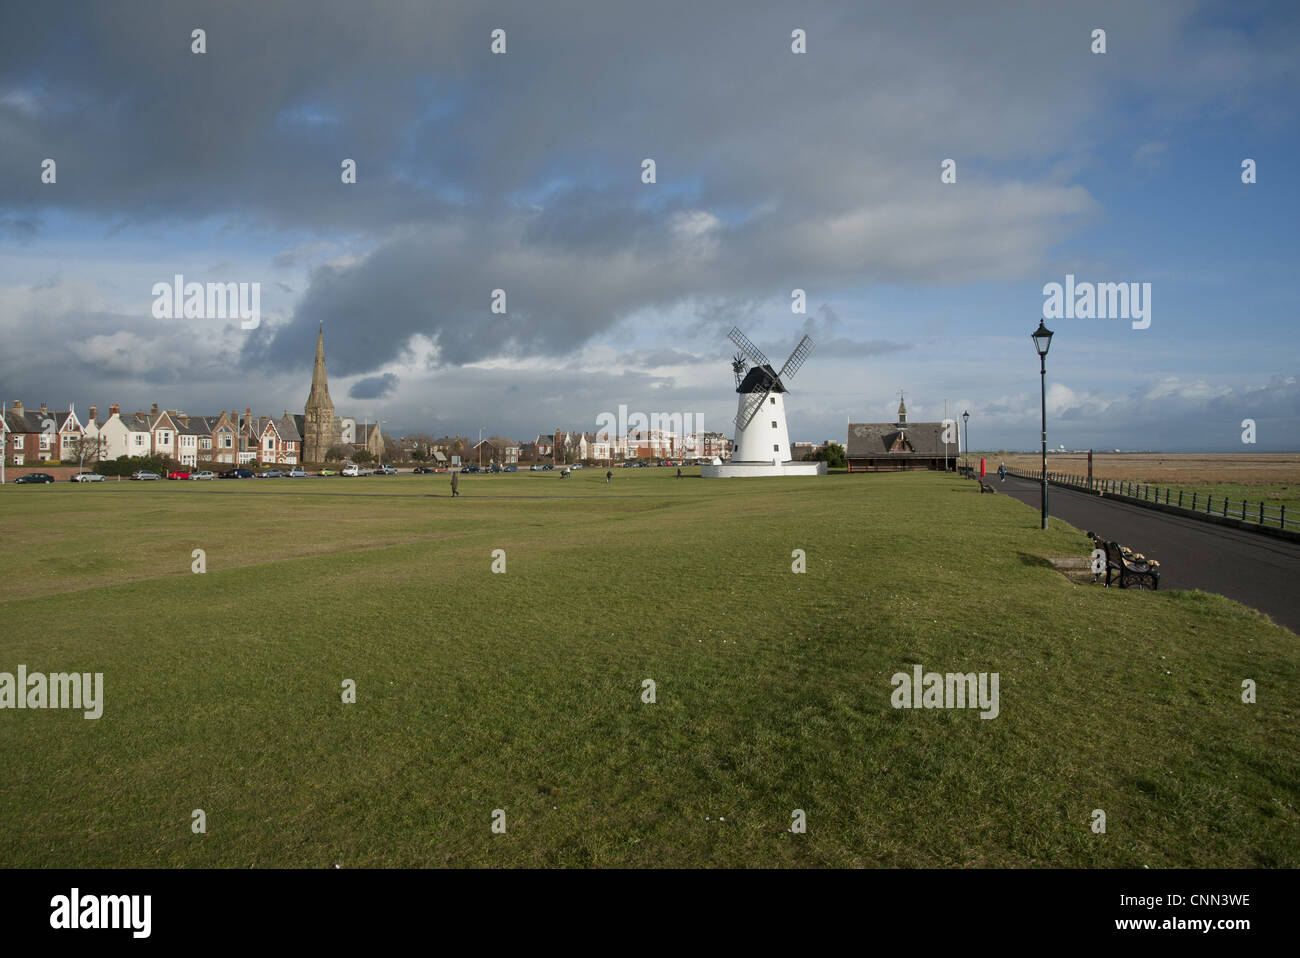 View grass promenade seaside resort town windmill old lifeboat house distance Lytham Windmill Old Lifeboat House - Stock Image